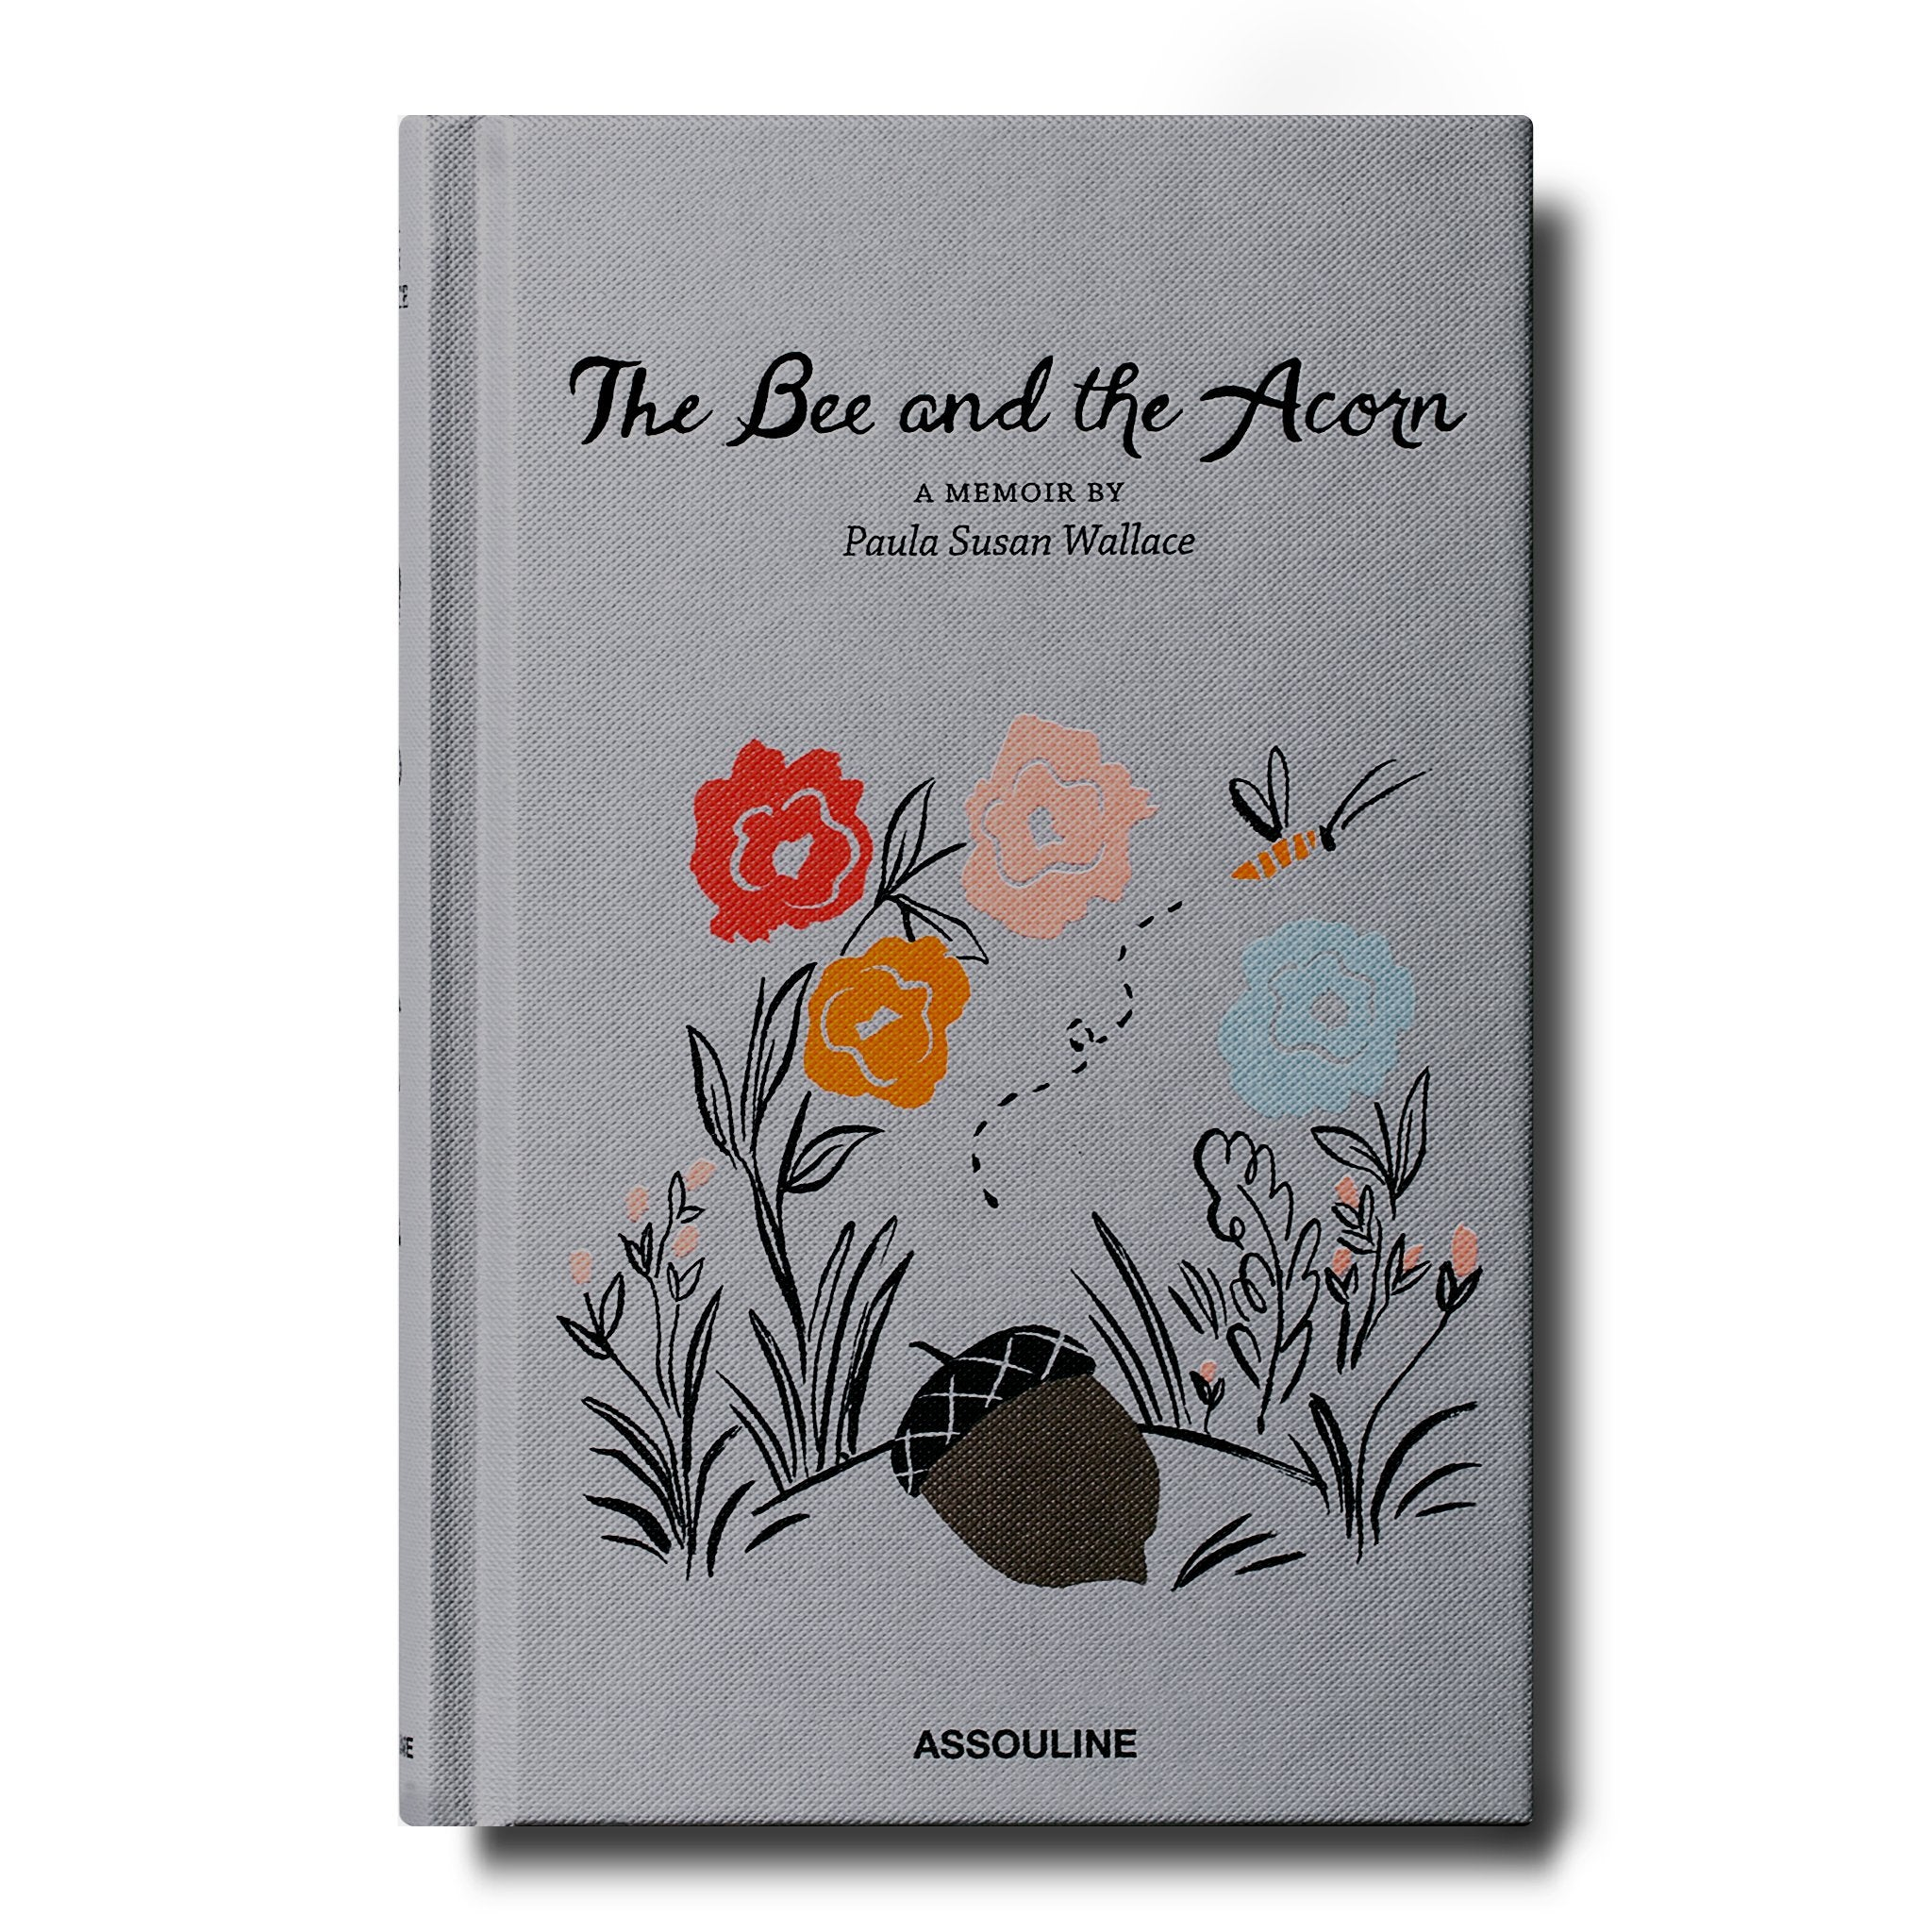 Assouline Books The Bee and the Acorn: A Memoir by Paula Susan Wallace